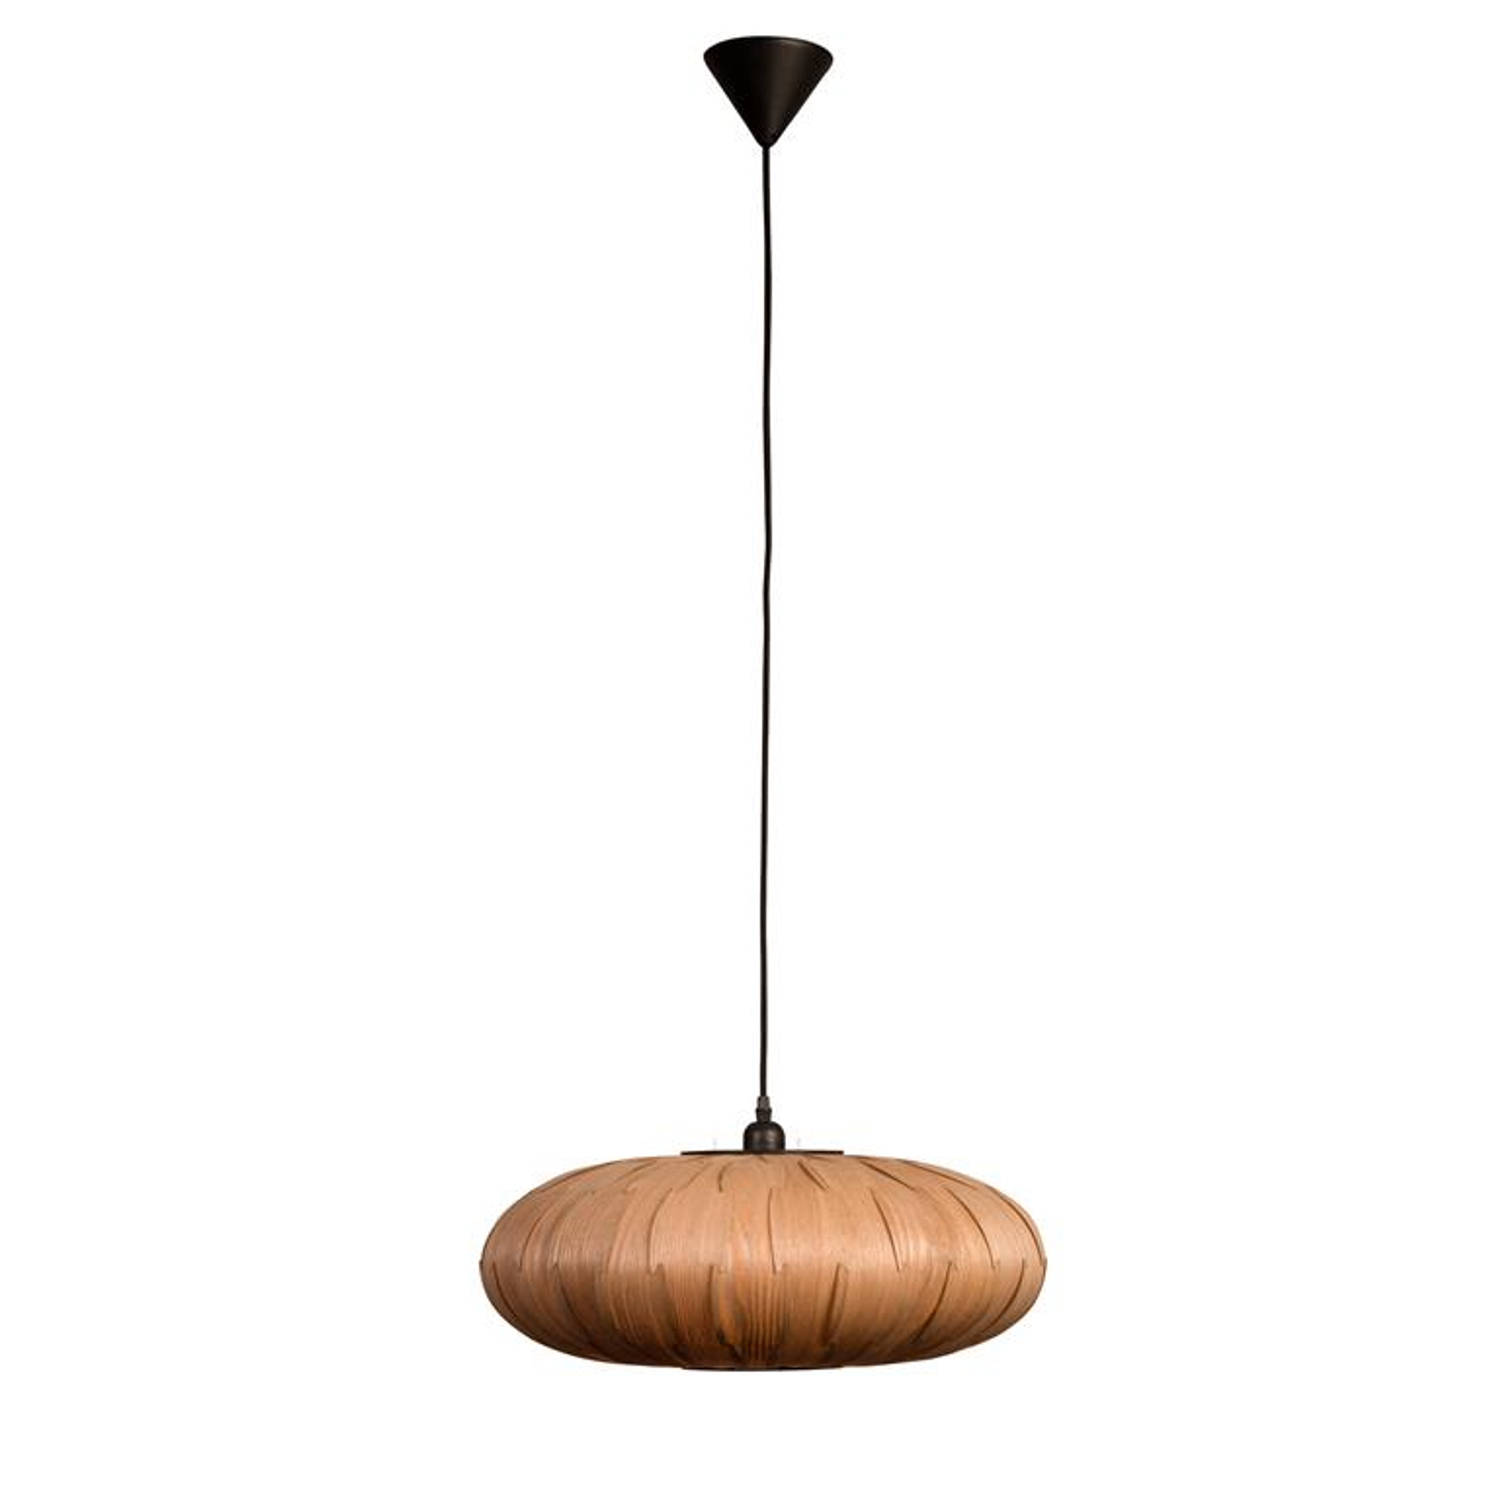 Dutchbone Bond Hanglamp